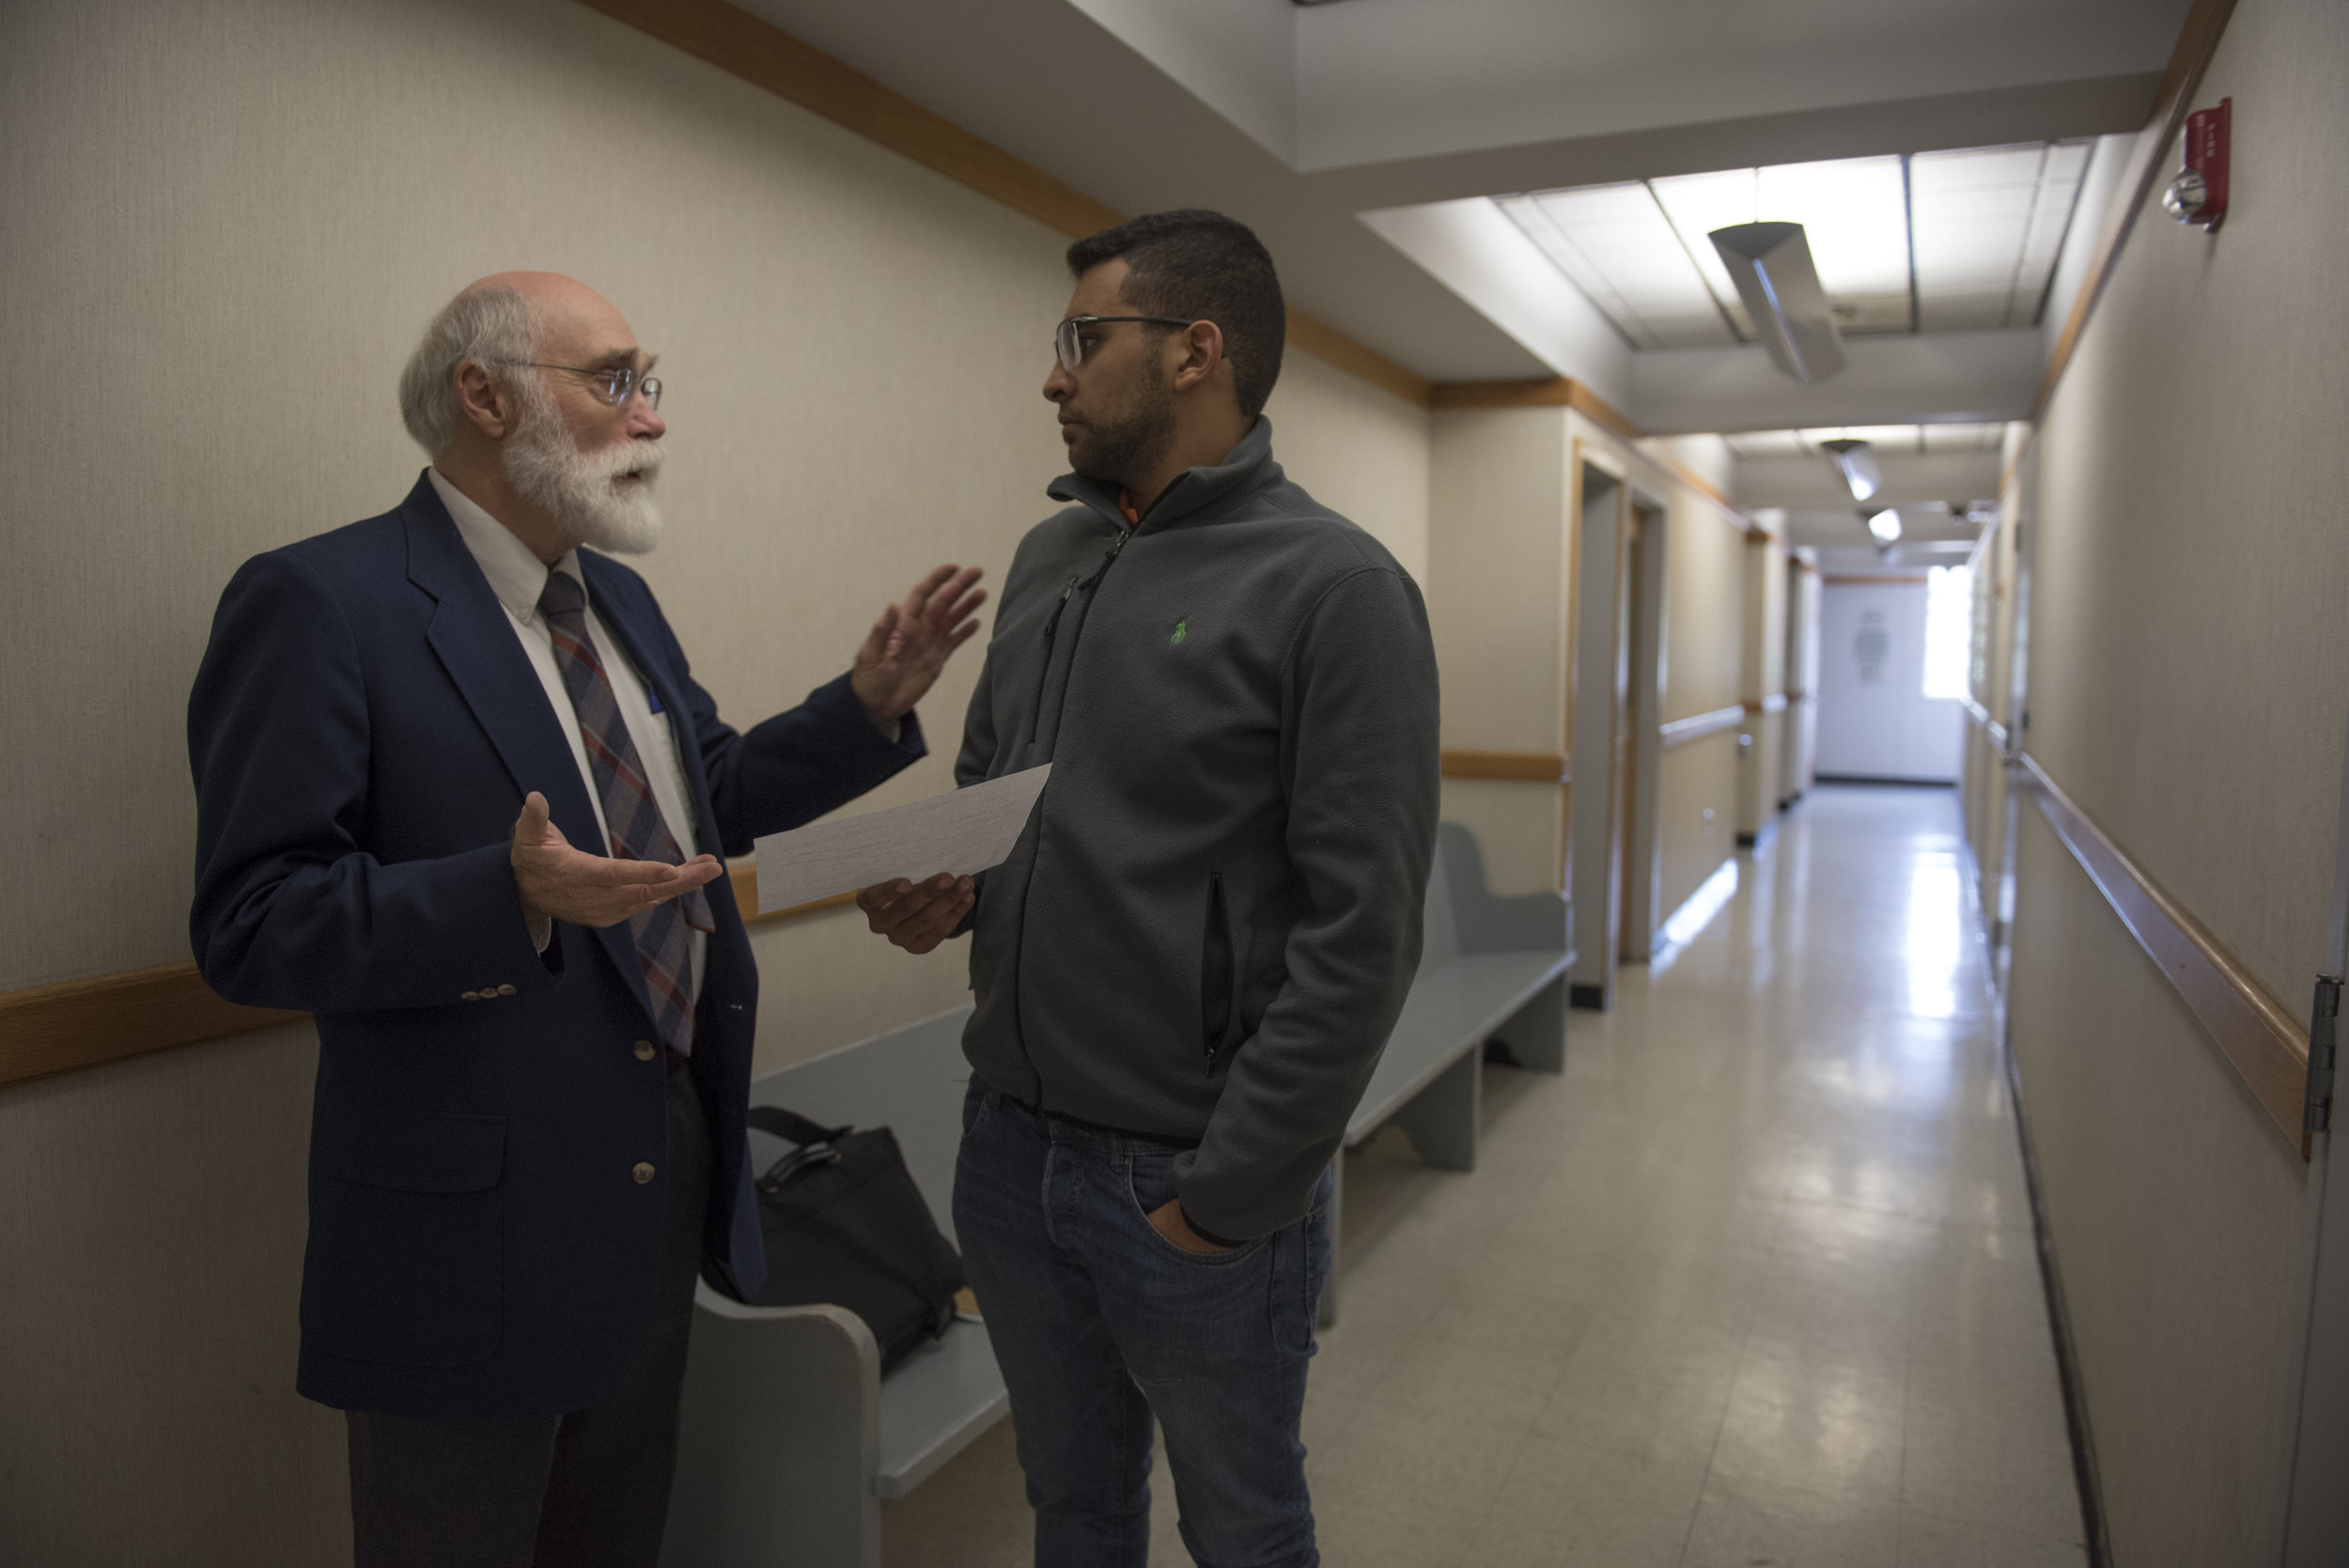 Pat McGee and his client Karim Elmasry, an Ohio University student from Egypt, discuss Elmasry's case outside the courtroom after finishing legal proceedings on Sept. 6, 2017 at the Athens Municipal Court in Athens, Ohio.